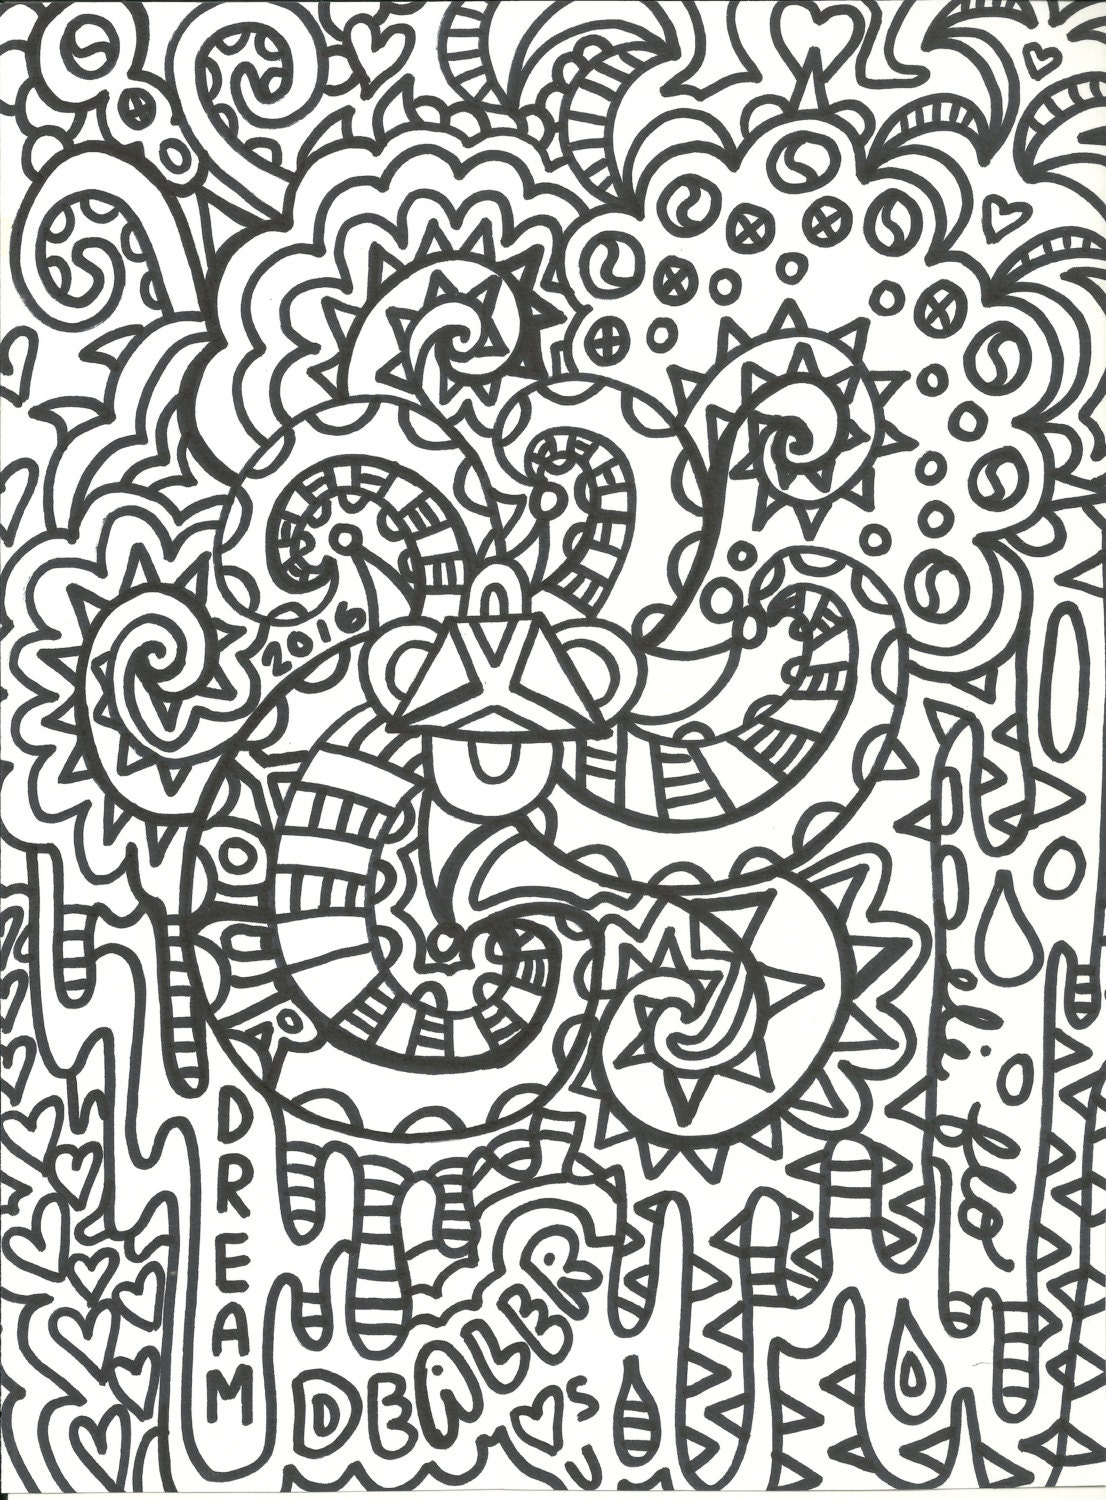 adult coloring book psychedelic unique designsdigital download 5 jpeg files print your own unlimited ydd art prints - Coloring Book Download